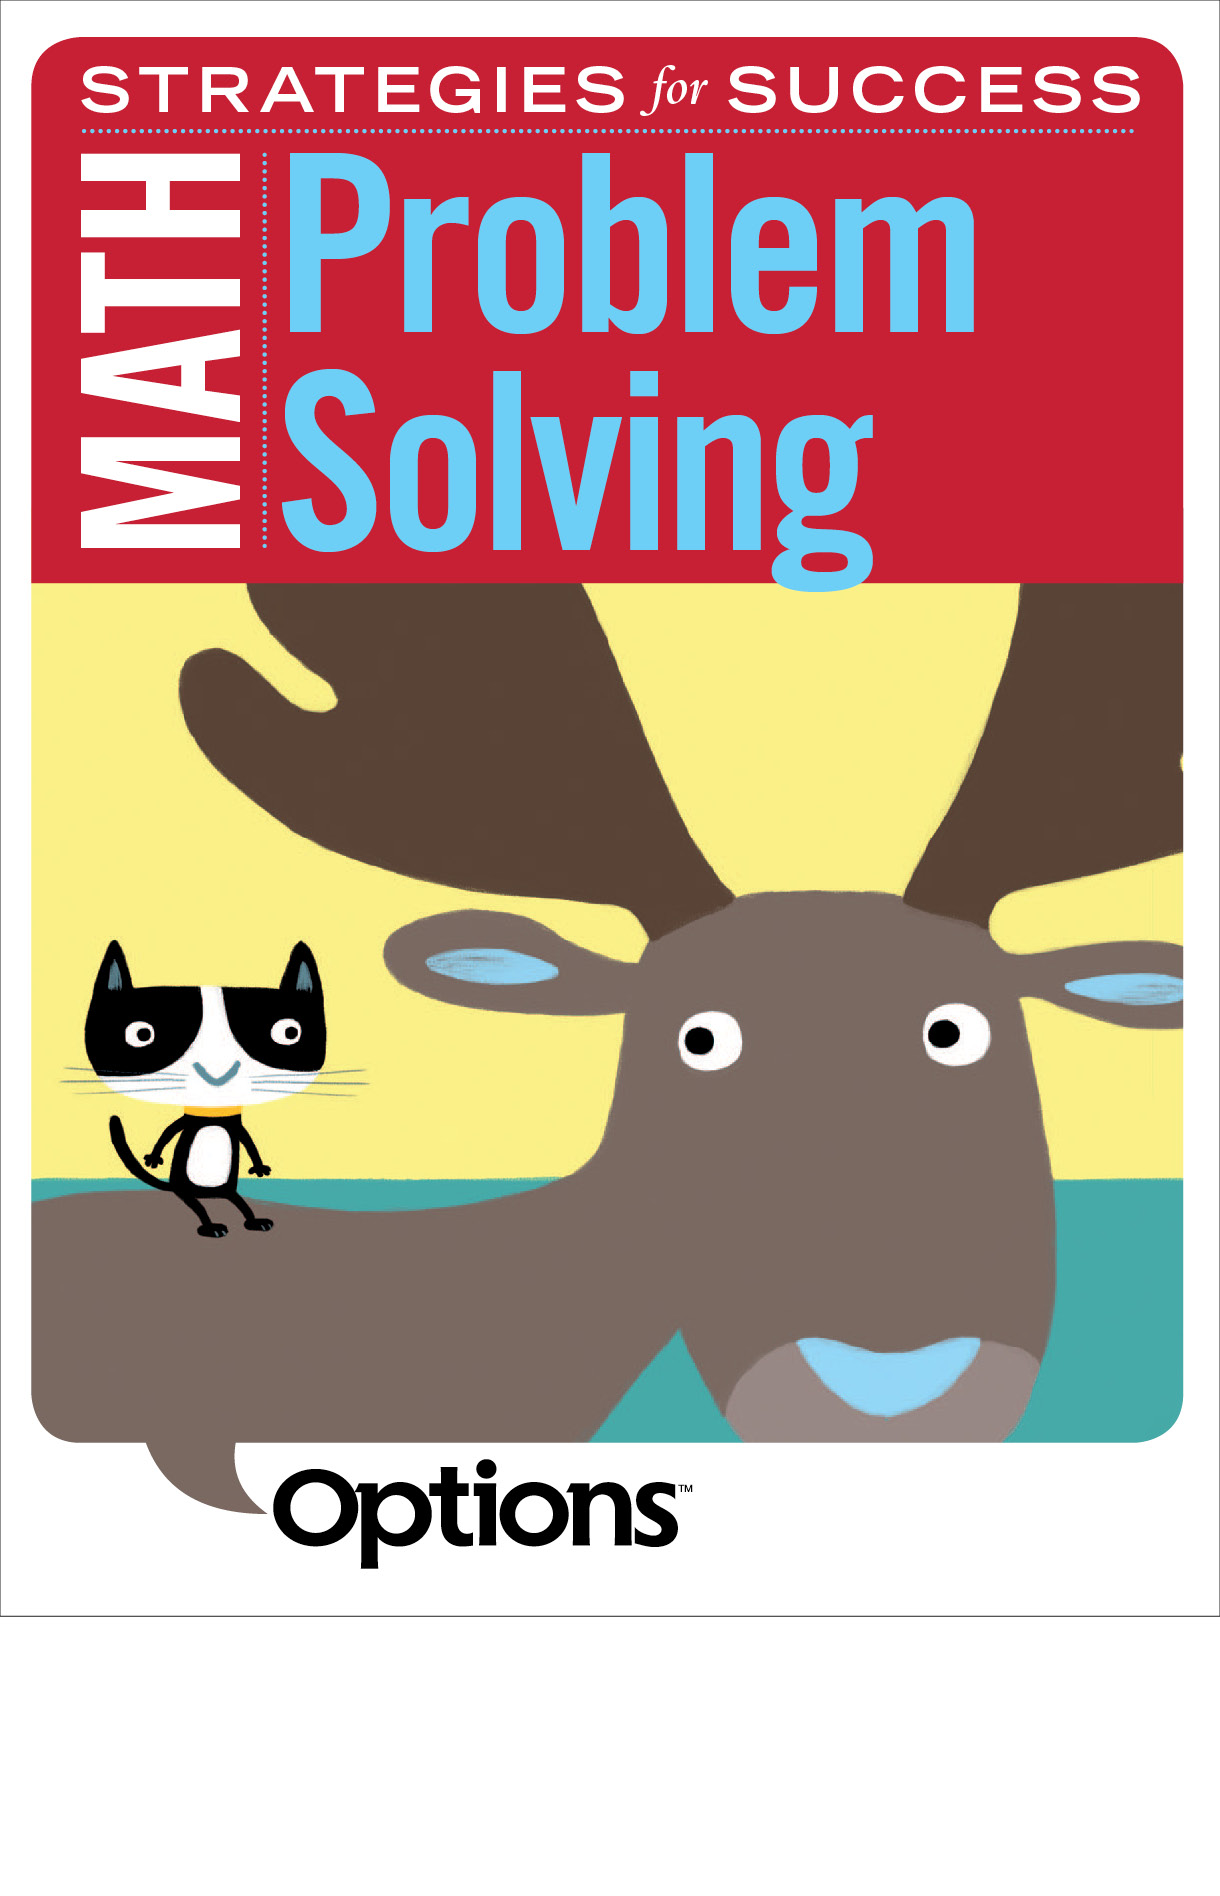 Book cover of Math Strategies for Success, Problem Solving. It has a deer with a cat on its back.